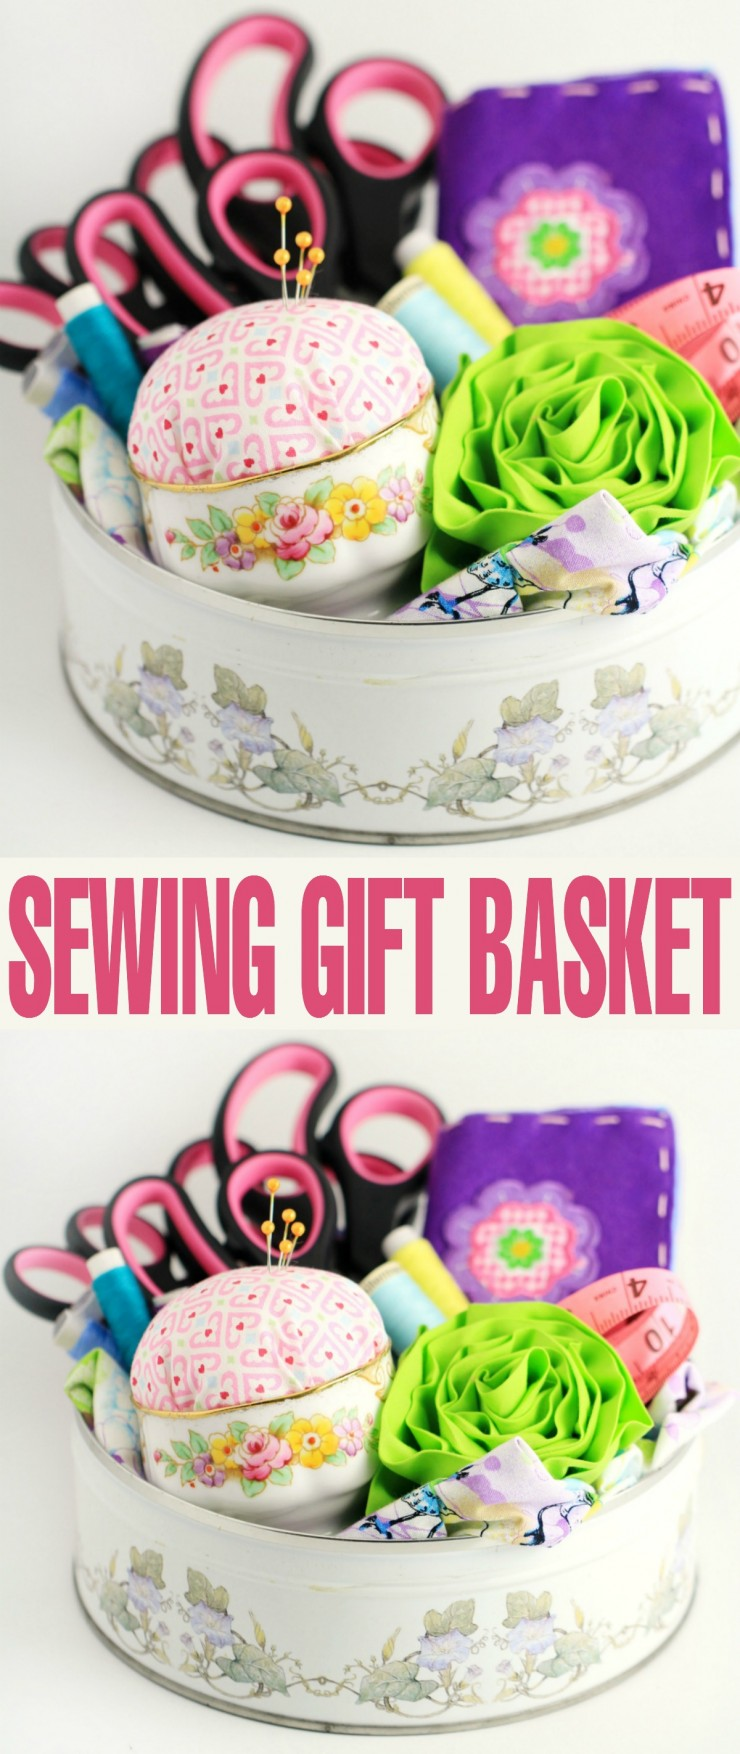 This DIY sewing gift basket includes items the recipient will enjoy using for their sewing projects. It's the perfect gift for anyone who loves to sew, or is learning how to!.